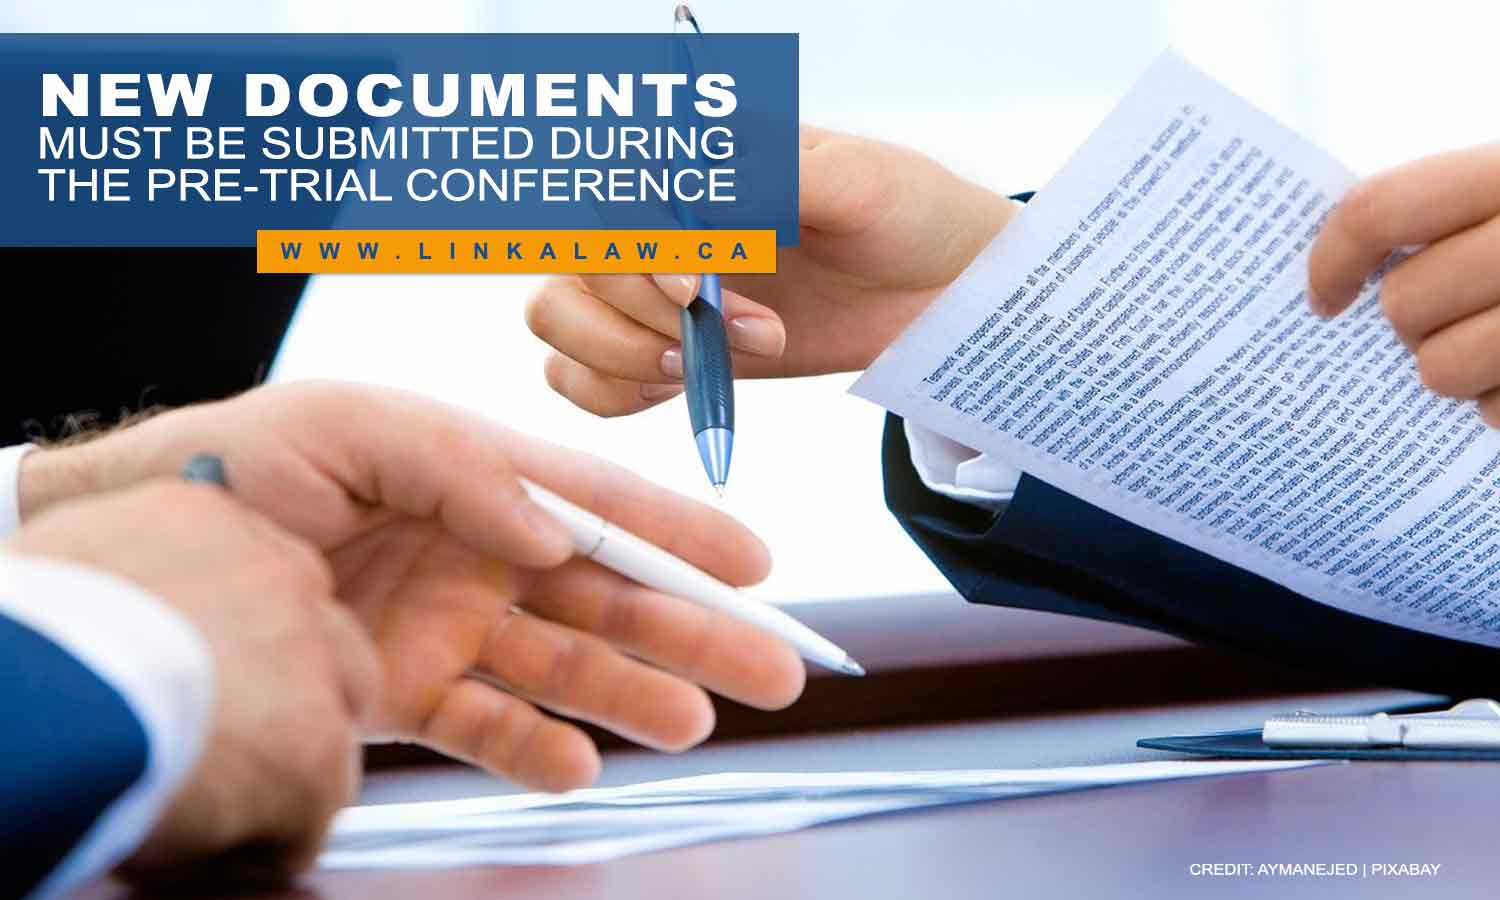 New documents must be submitted during the pre-trial conference